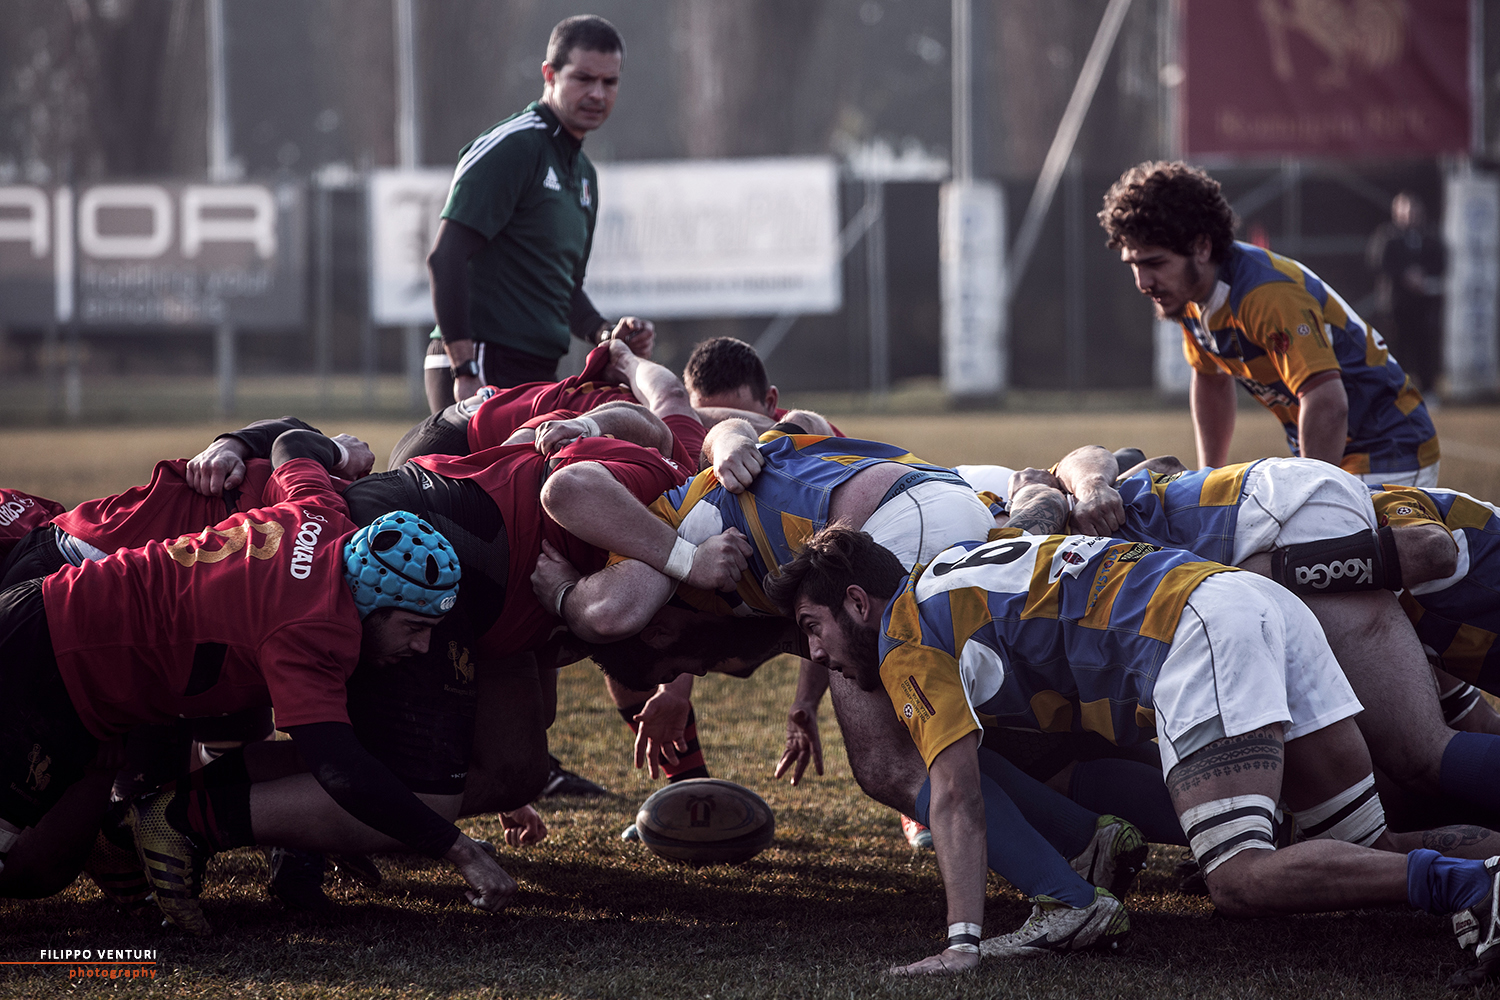 romagna_rugby_parma_12.jpg